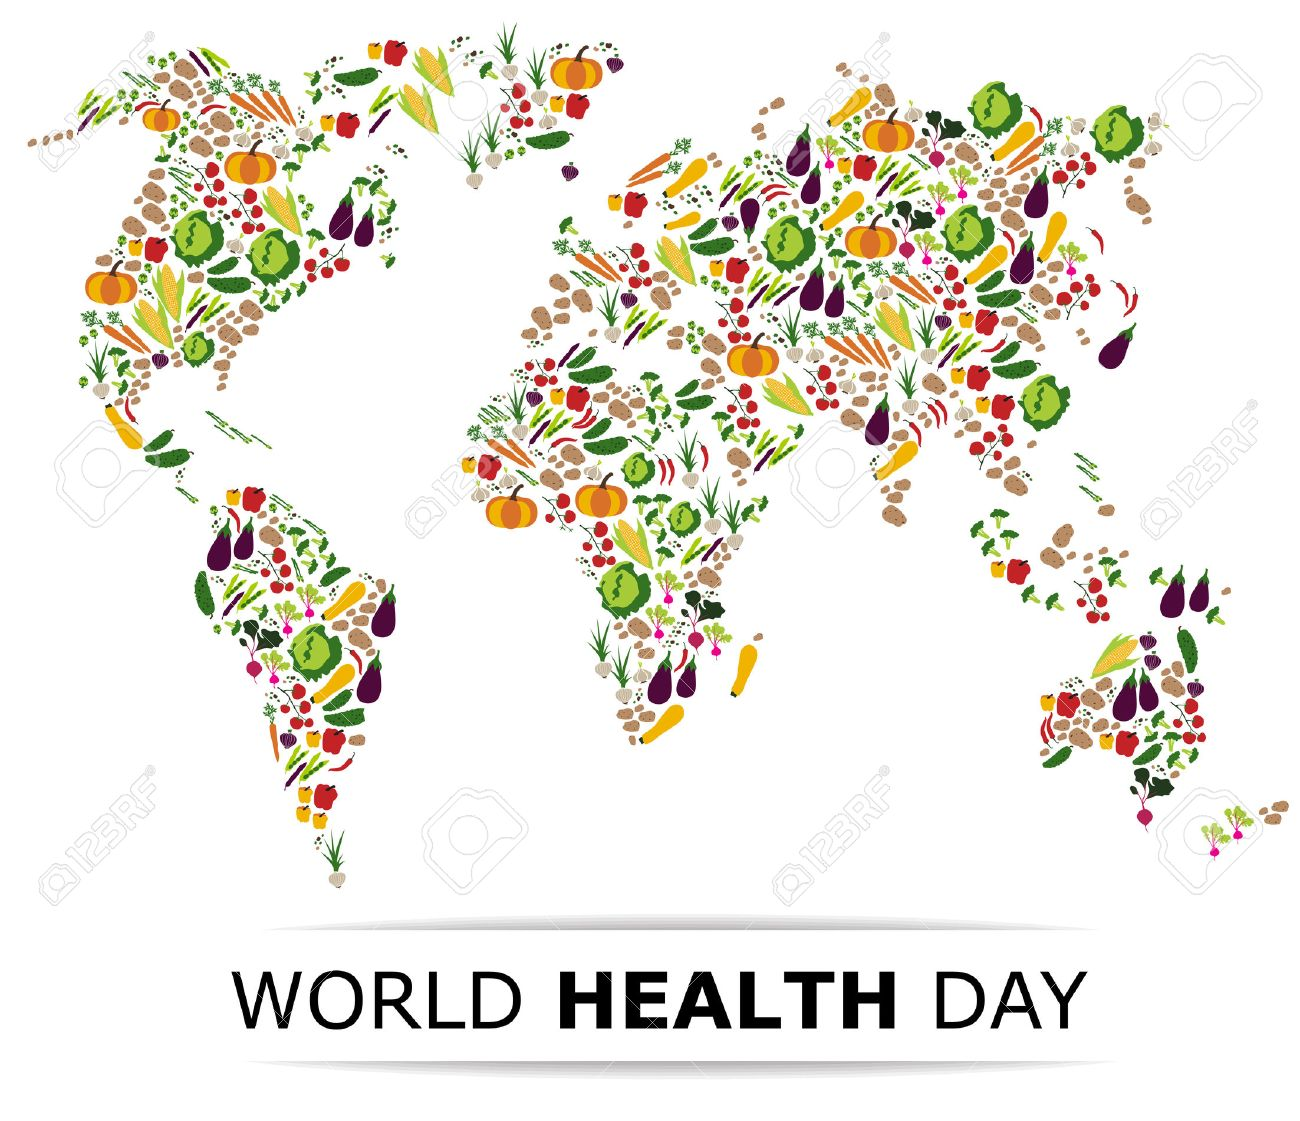 Nutrition food for healthy life world health day concept cartoon nutrition food for healthy life world health day concept cartoon world map stock gumiabroncs Gallery